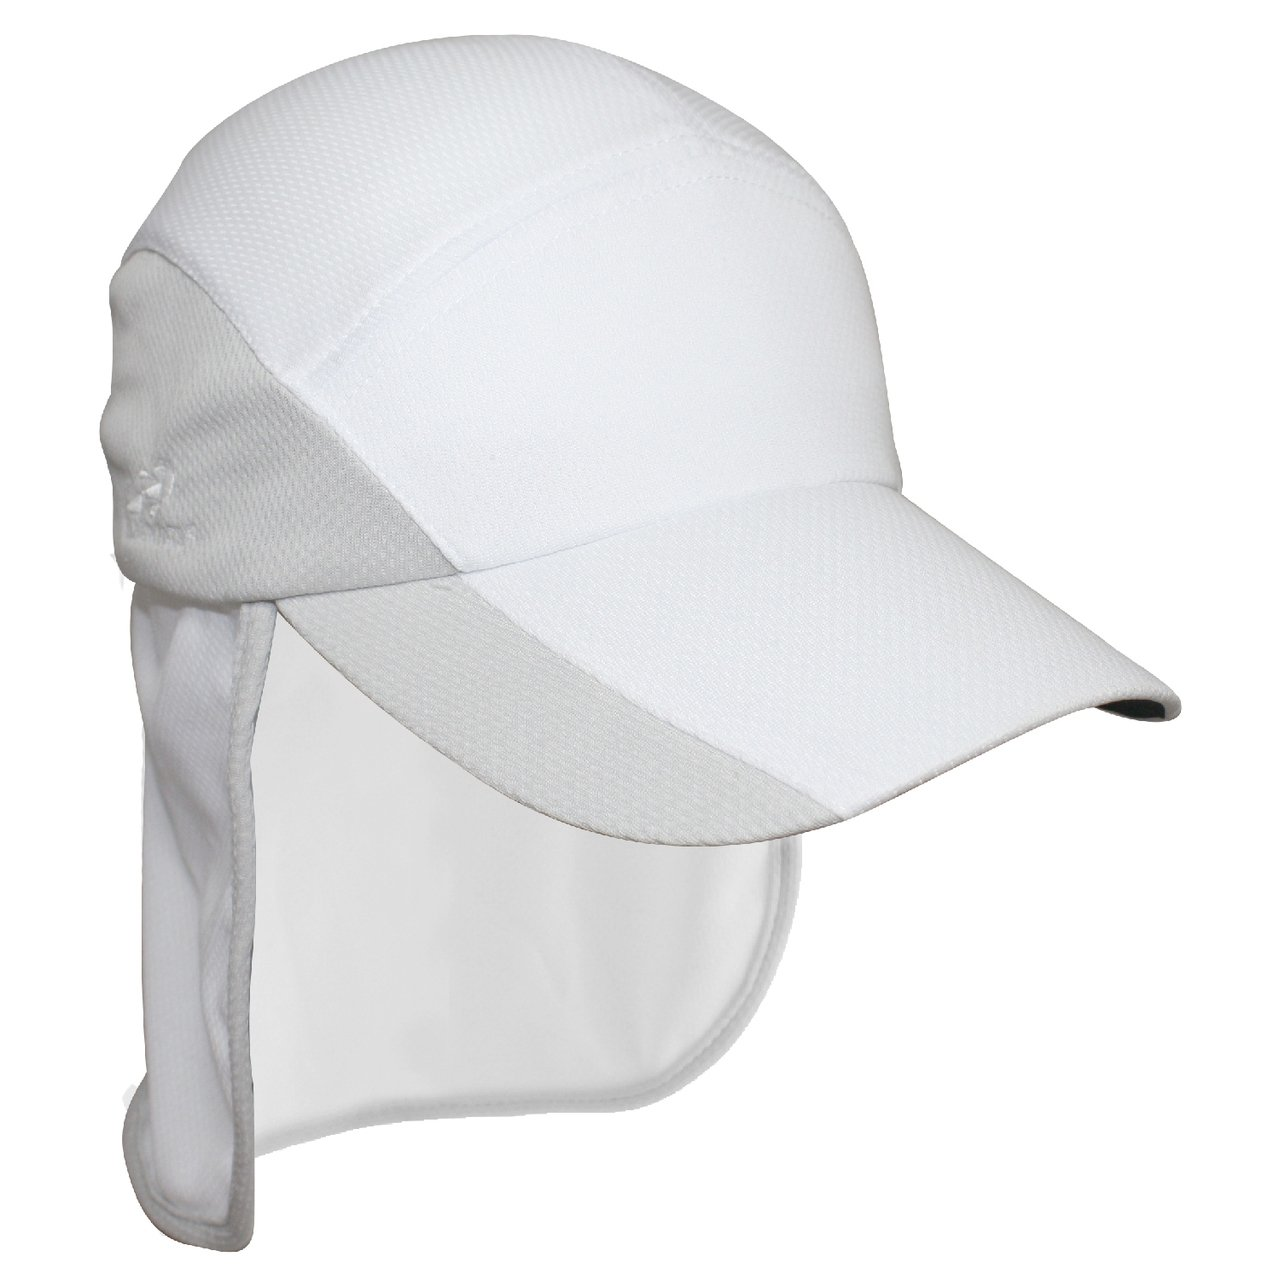 Headsweats Sports ProTech Hat Running Hat Baseball Cap with neck protection, 7708851 Unisex White/Sport Silver 7708 851